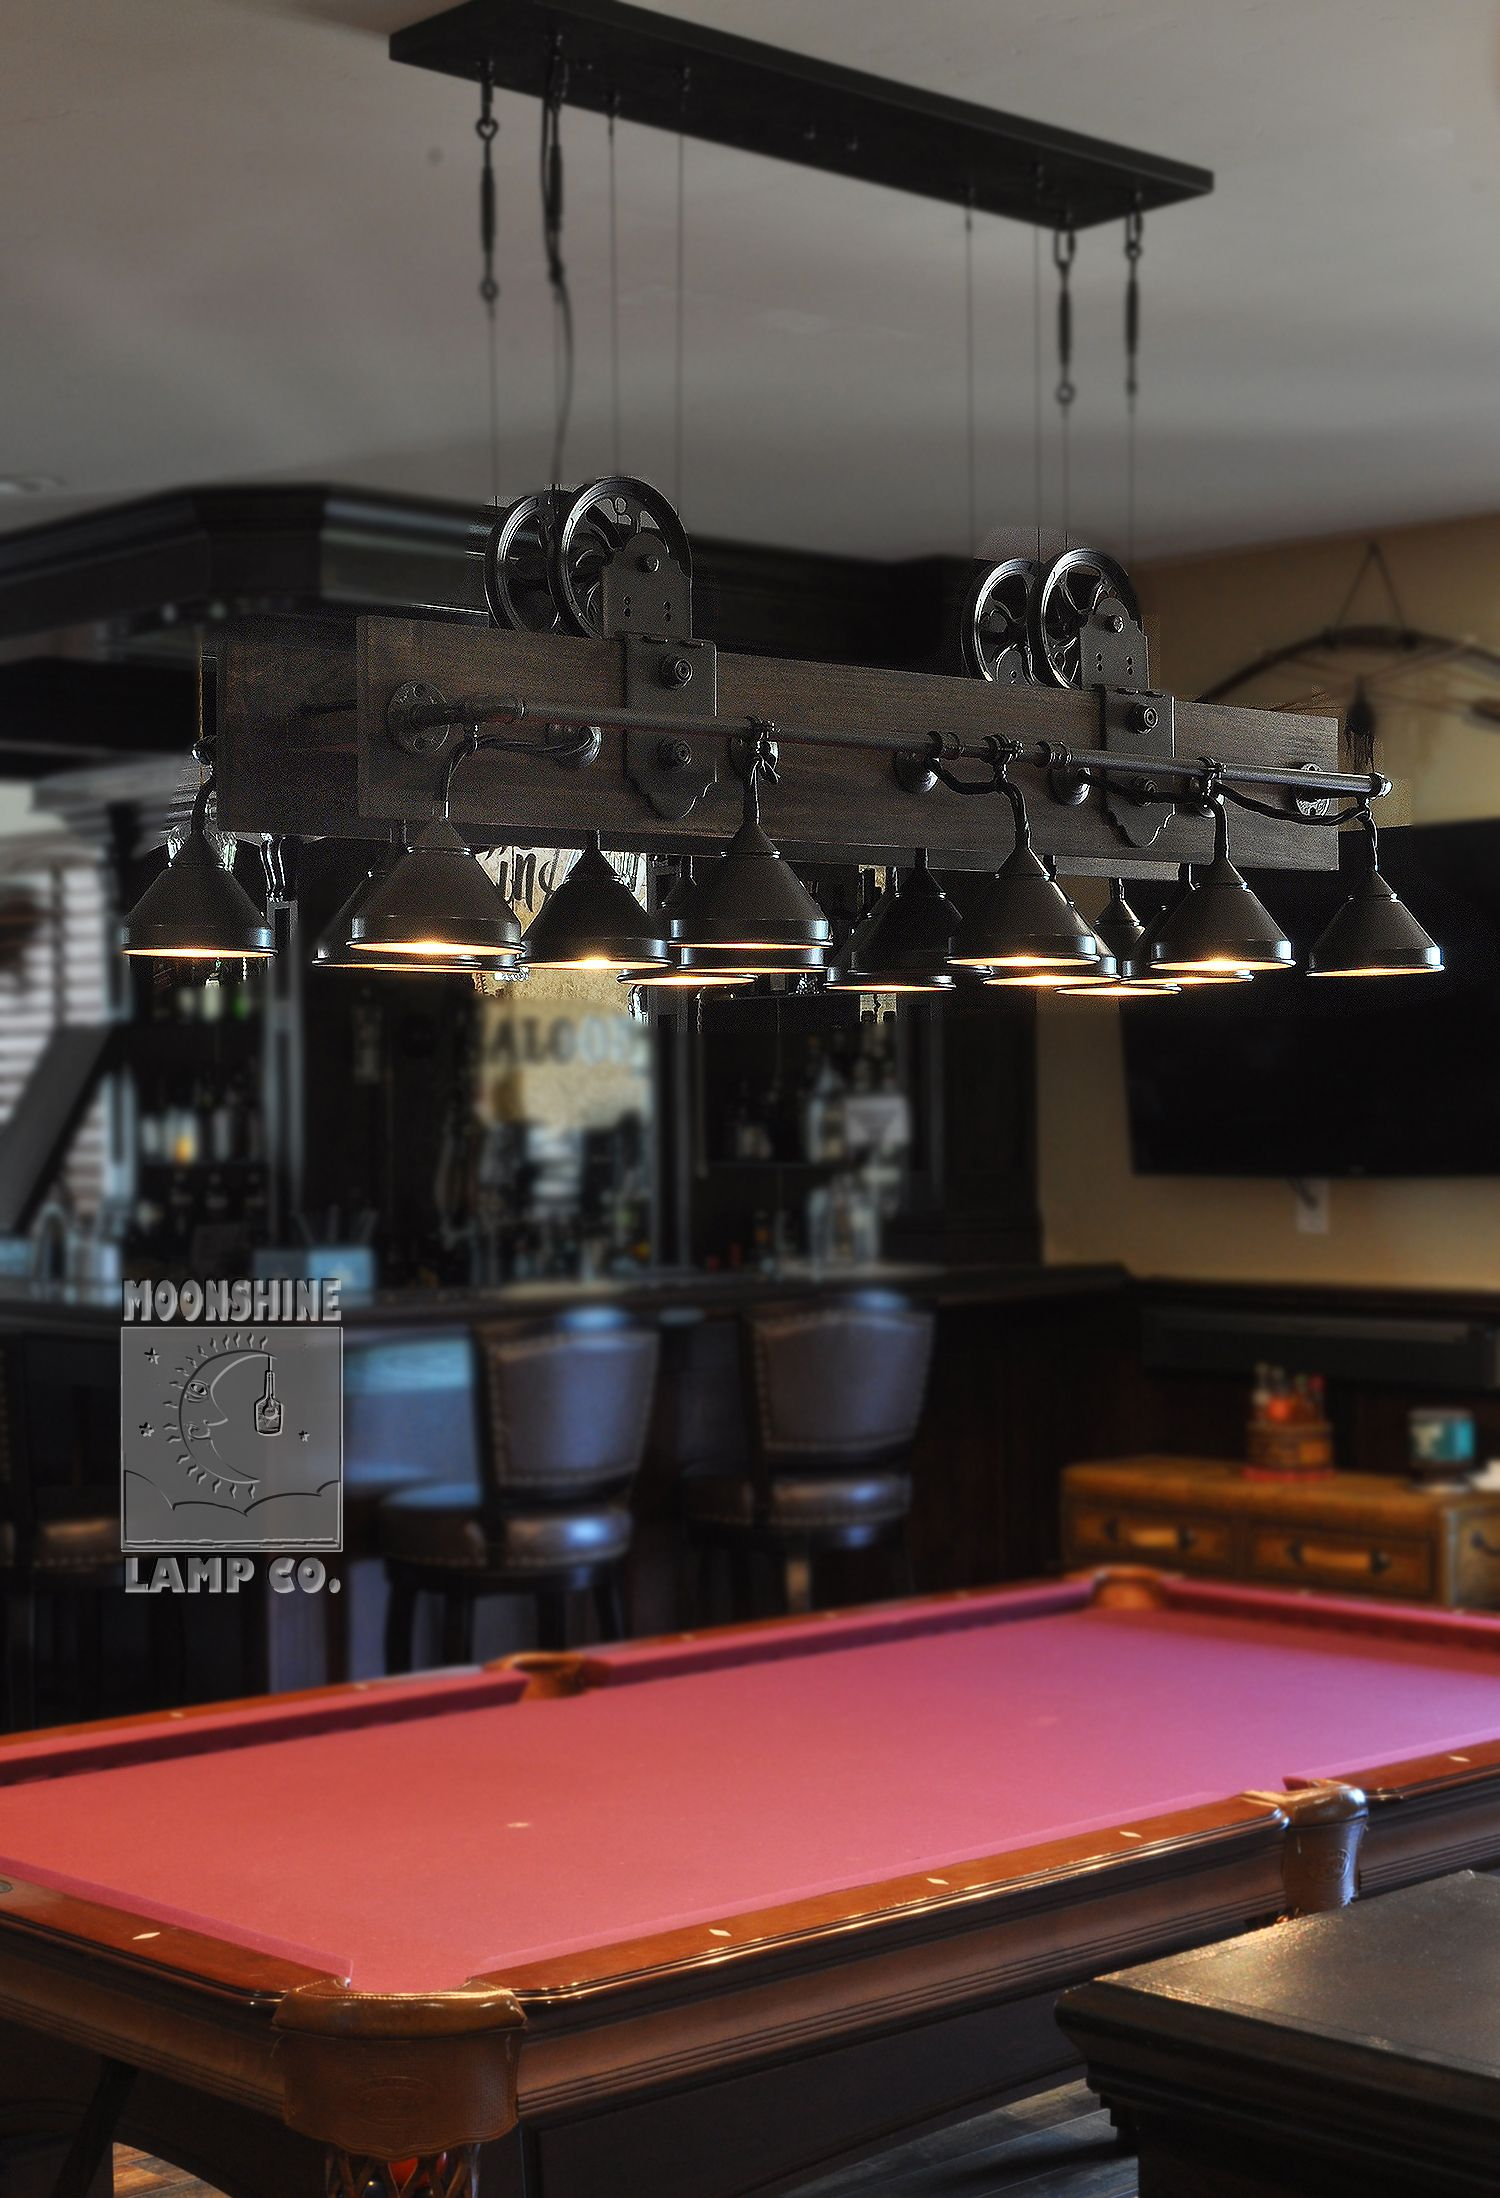 Lots of detail in this amazing pool table light made out of steel lots of detail in this amazing pool table light made out of steel funnels water pipe and pulley wheels definitely one of our more intense custom jobs aloadofball Choice Image